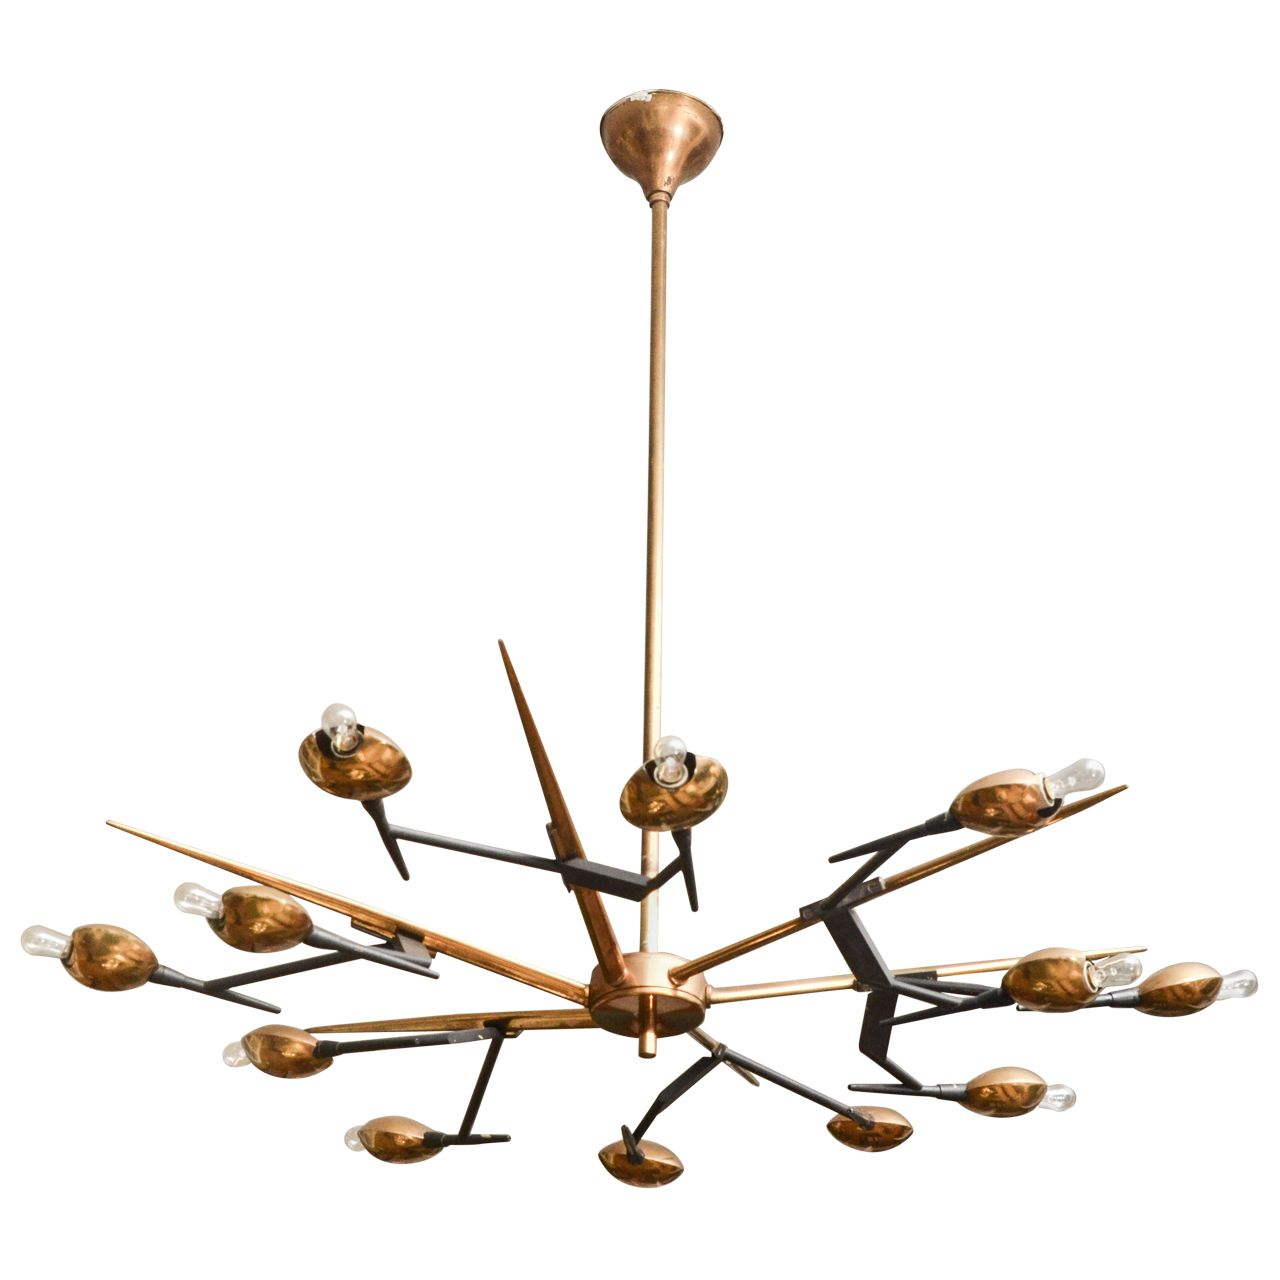 1960s italian brass and black metal chandelier by oscar torlasco 1960s italian chandelier by oscar torlasco from a unique collection of antique and modern chandeliers aloadofball Images